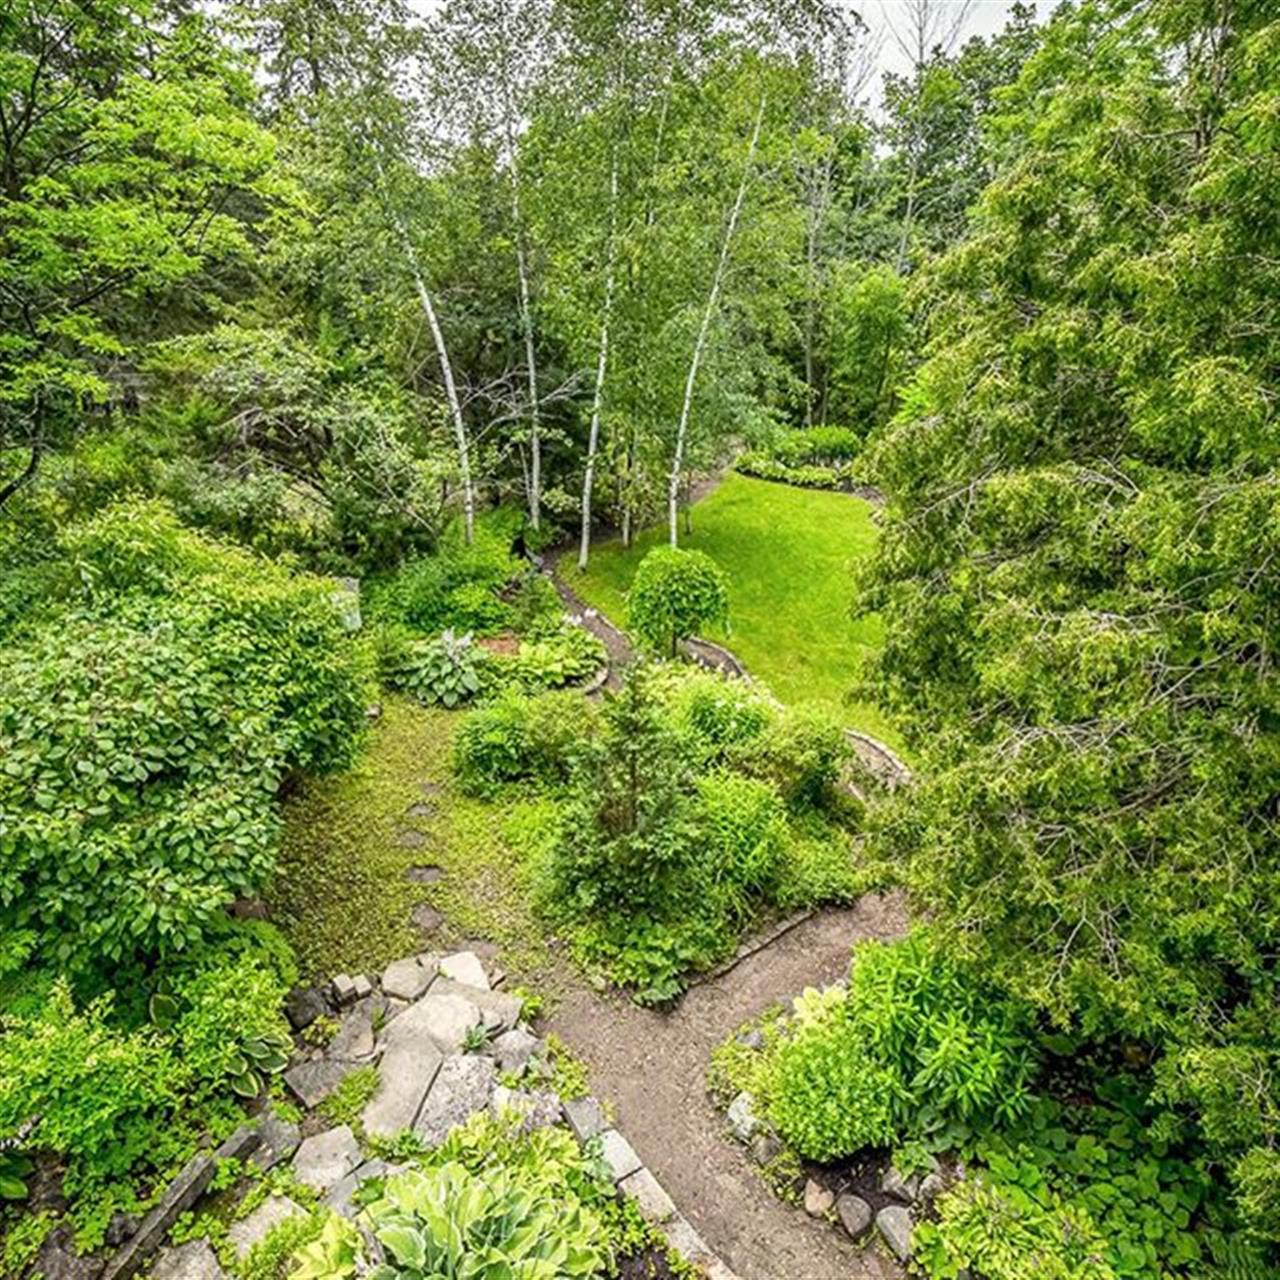 Backyard garden party anyone? It's #forsale @carolansorbara - - - - - #justlisted #livehere #livehappy #lovewhereyoulive #guelph #guelpheramosa #garden #backyard #green #lush #realestate #leadingre #gorgeous #vscocam